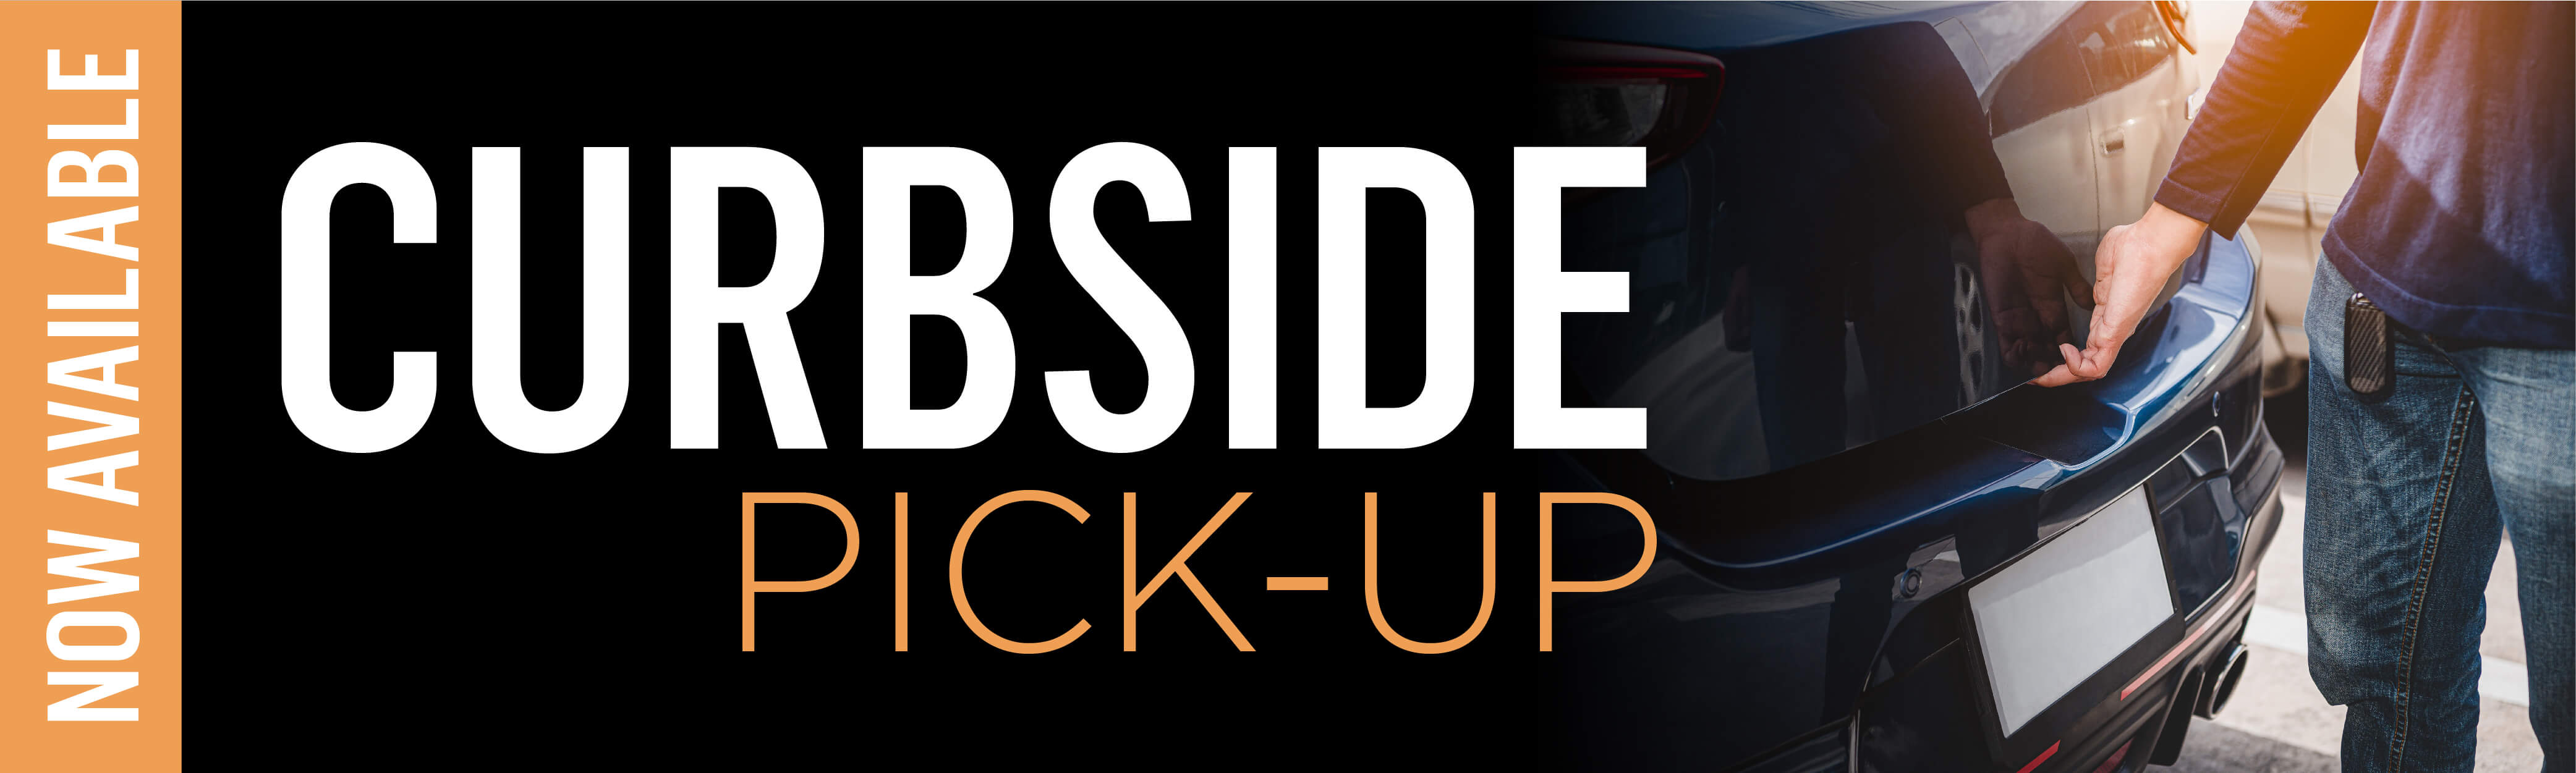 Curbside PICKUP SLIDER EN